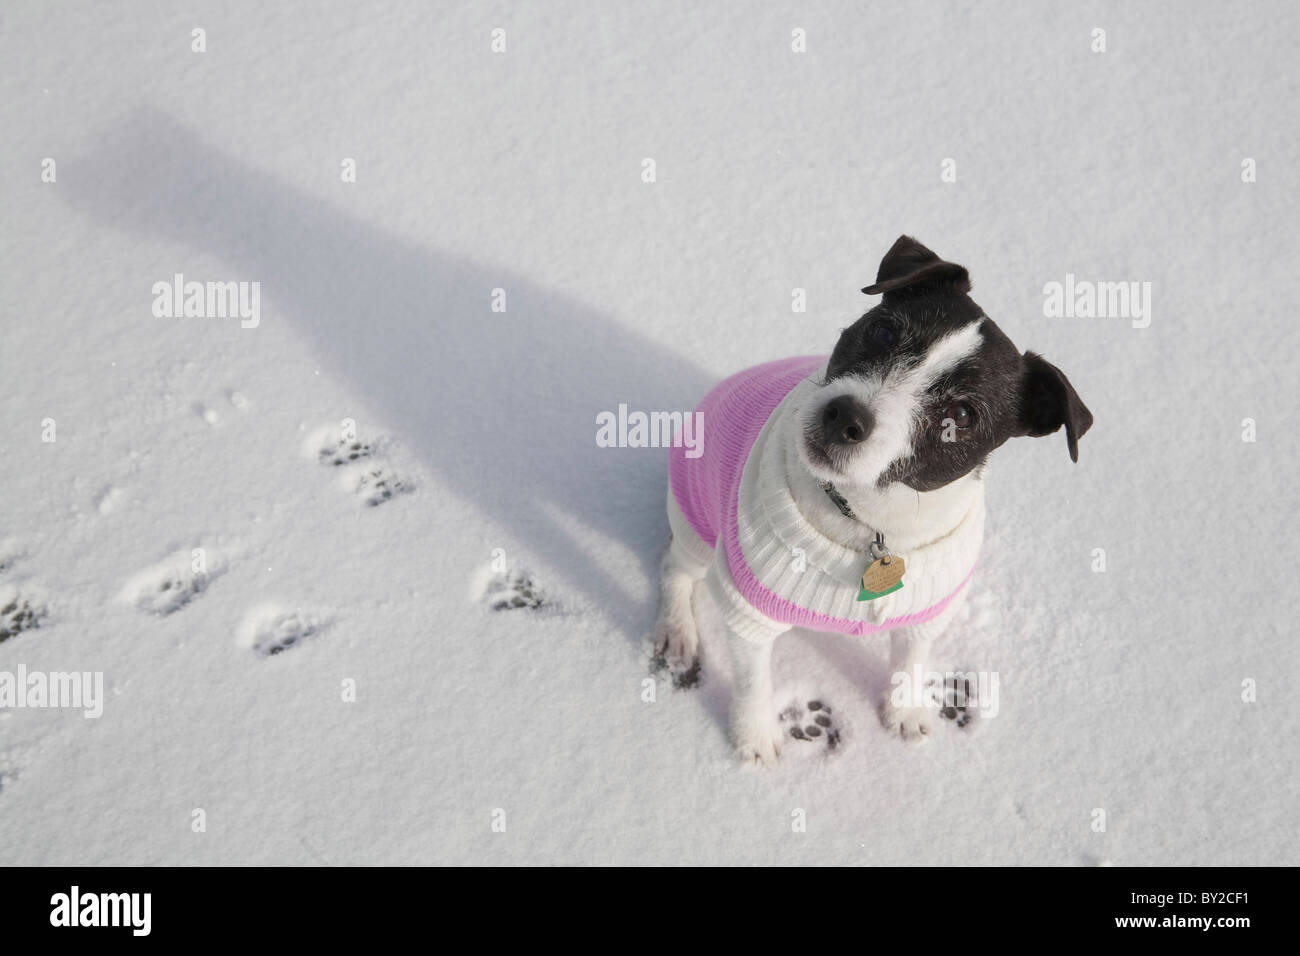 Jack Russell Terrier looking at camera with pink sweater on. - Stock Image